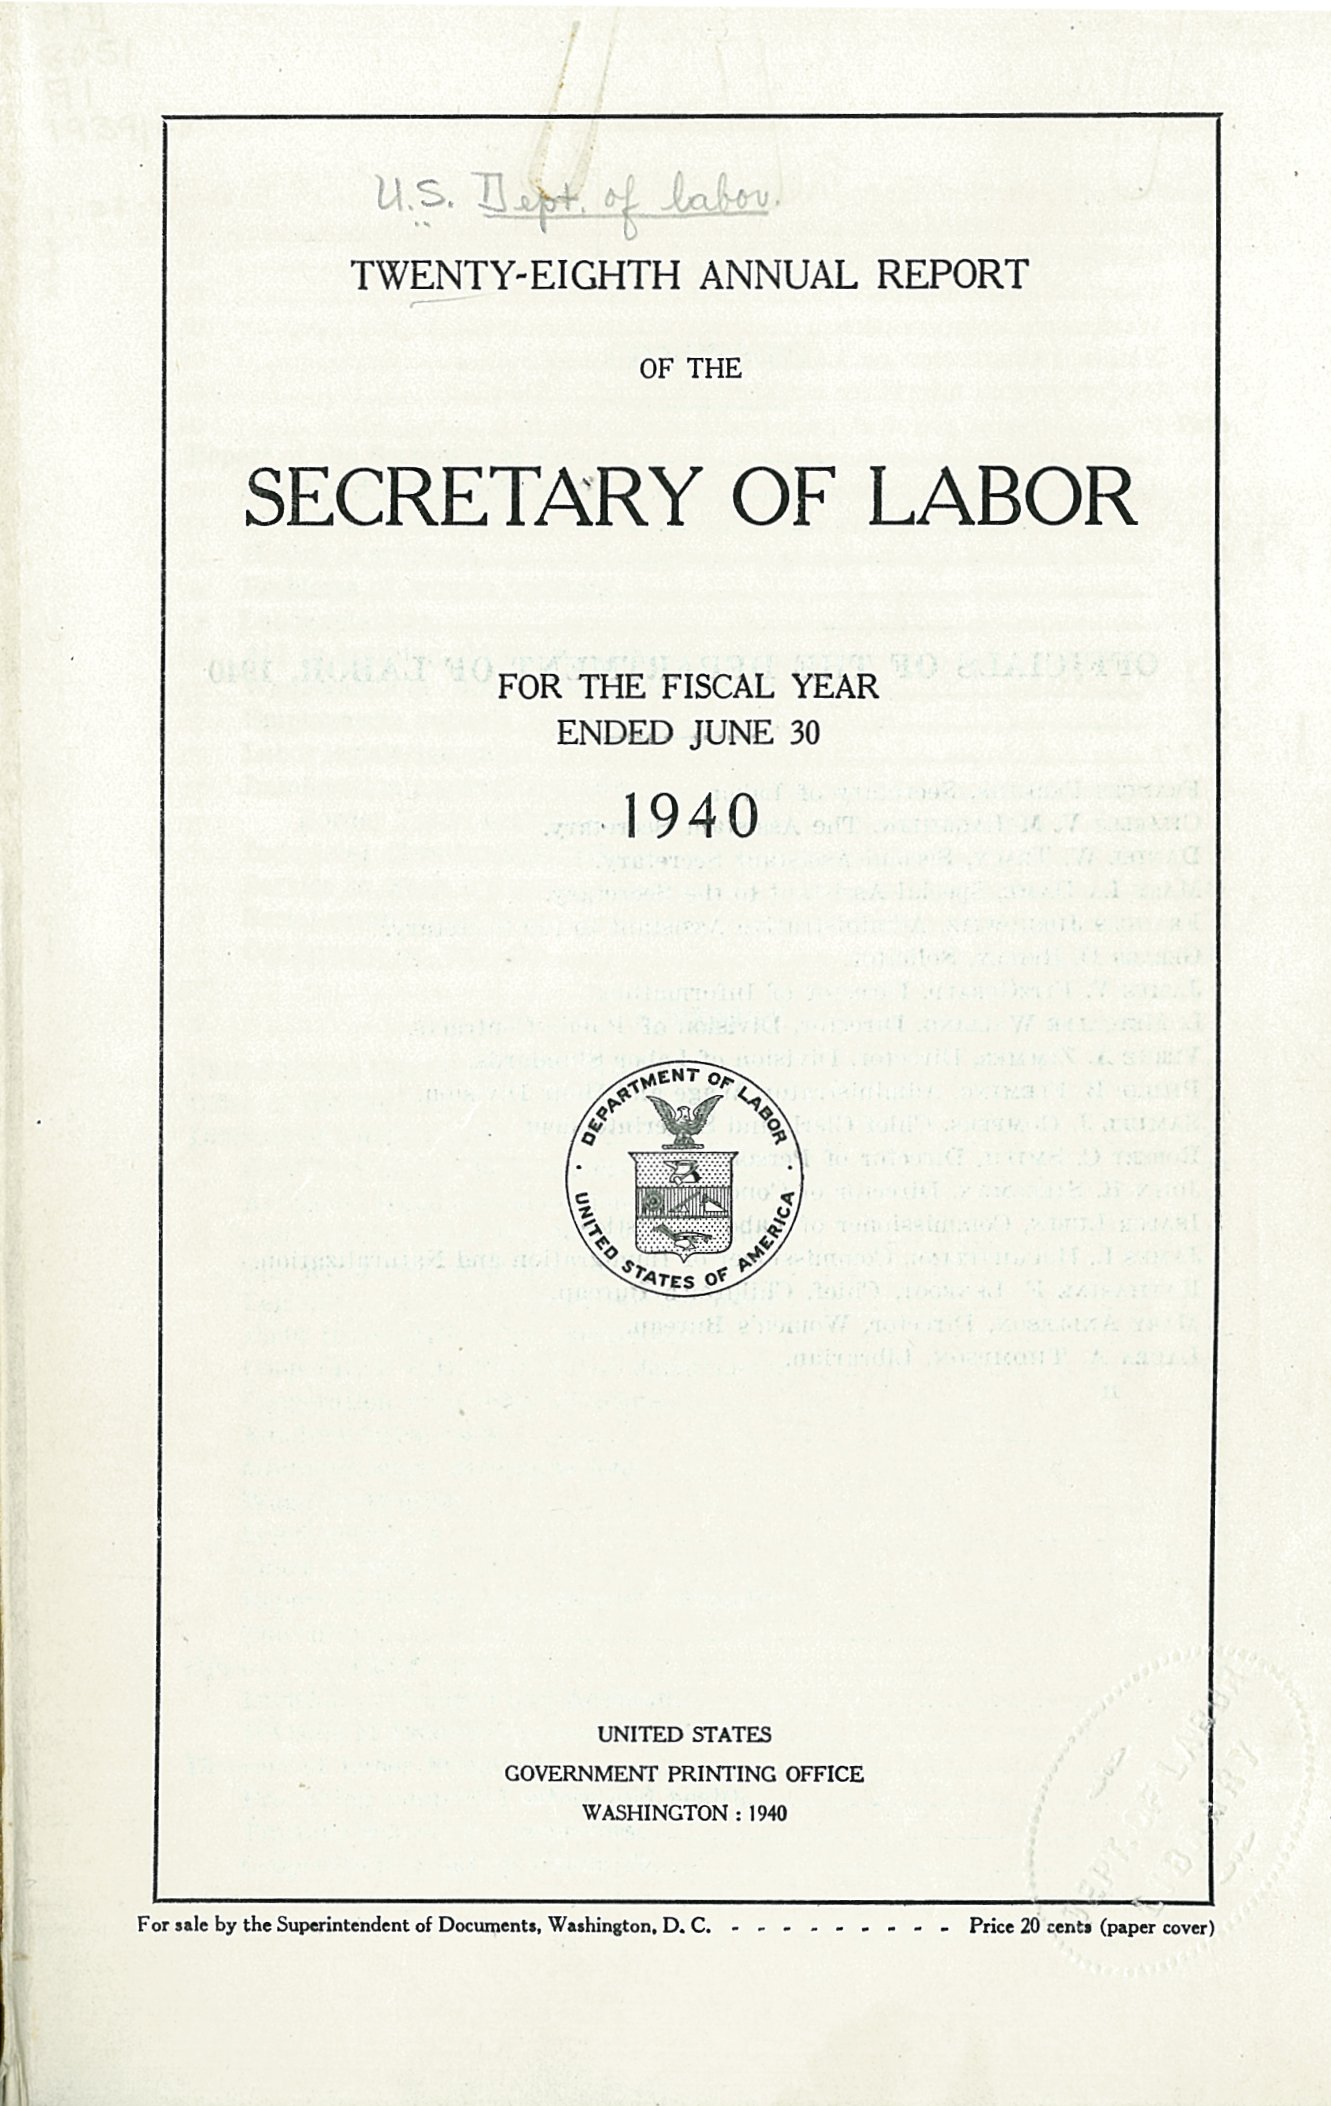 file usdol th annual report fy title page jpg file usdol 28th annual report fy 1940 title page jpg